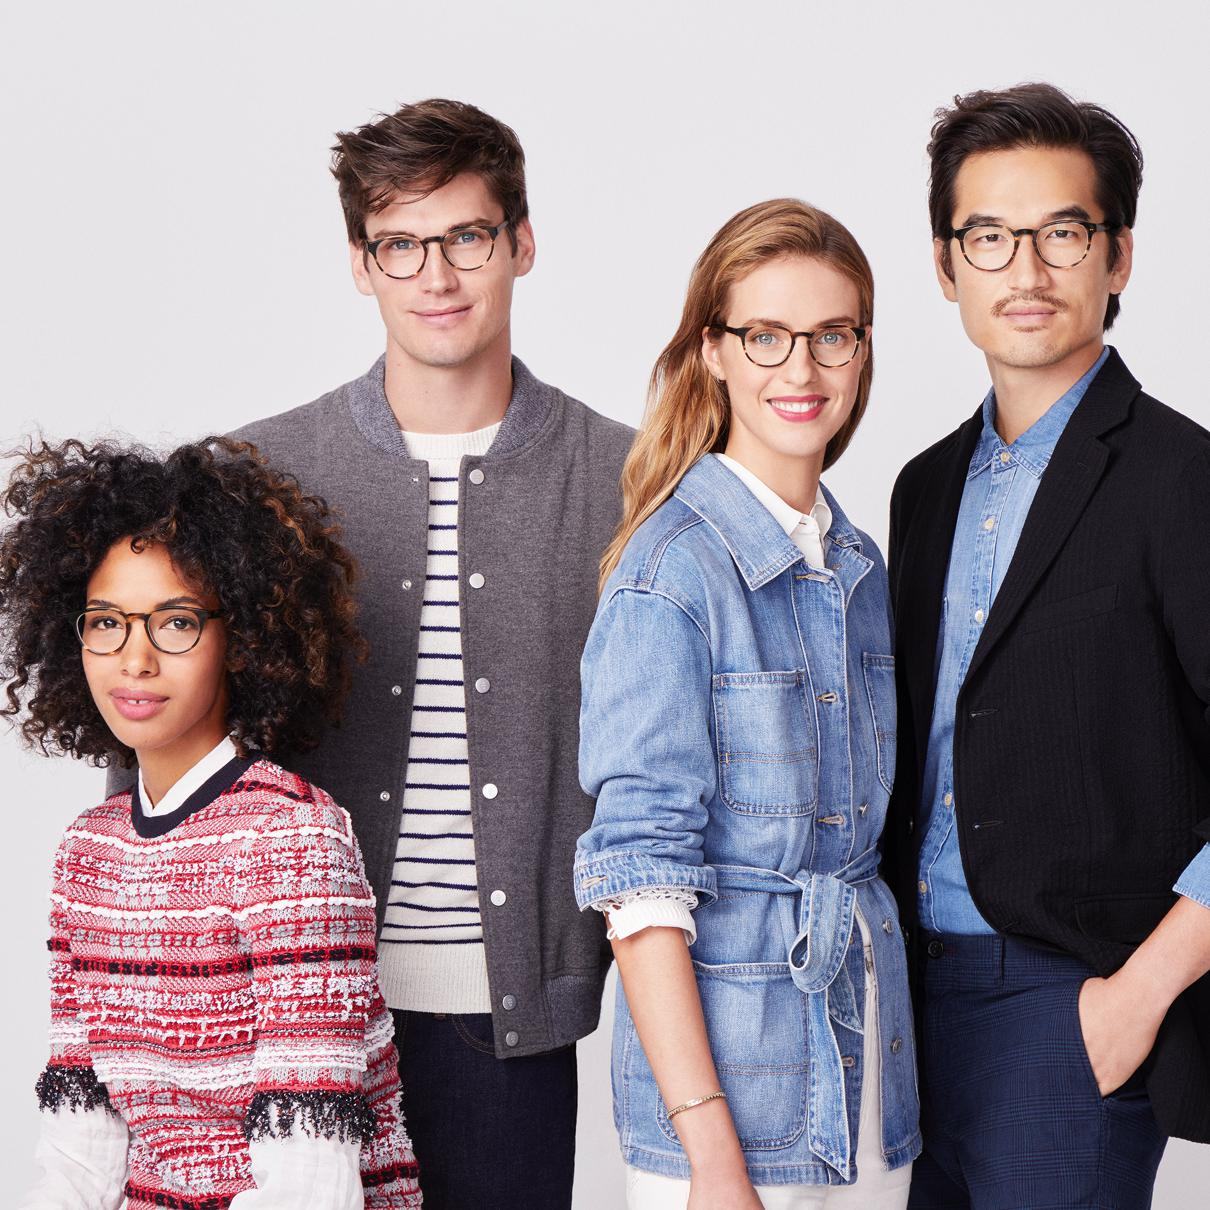 four people wearing fall clothing and glasses